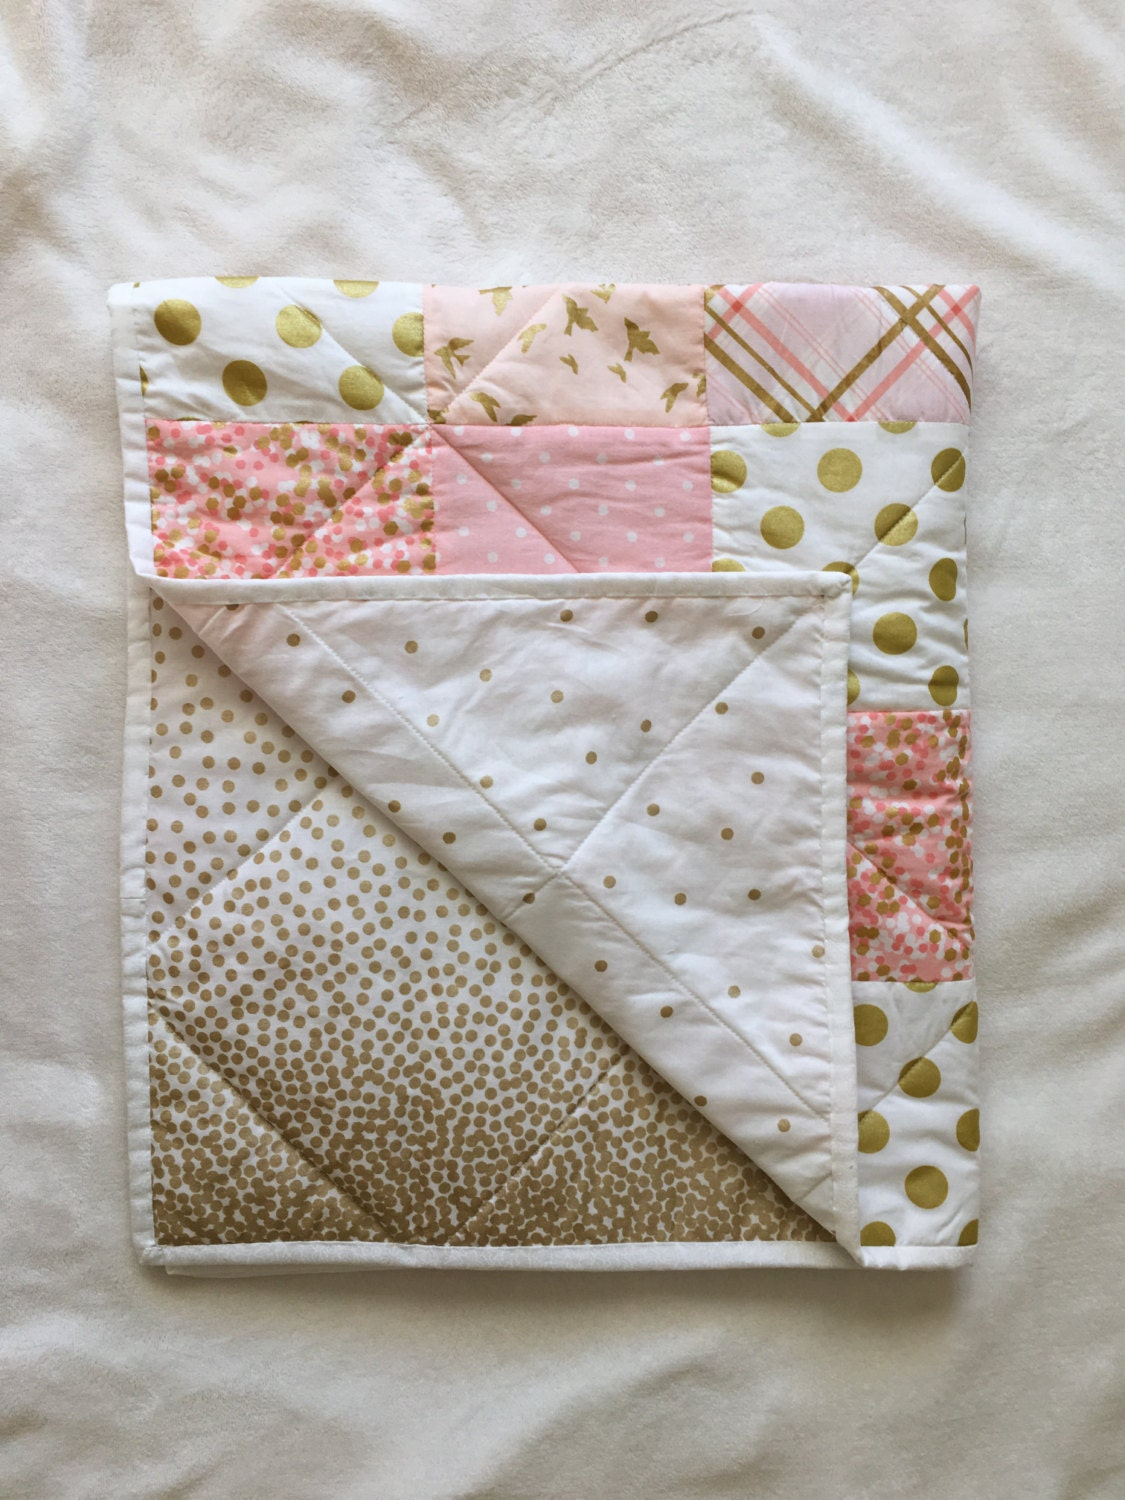 Baby blanket modern baby quilt girl pink gold white - Colchas cuna patchwork ...